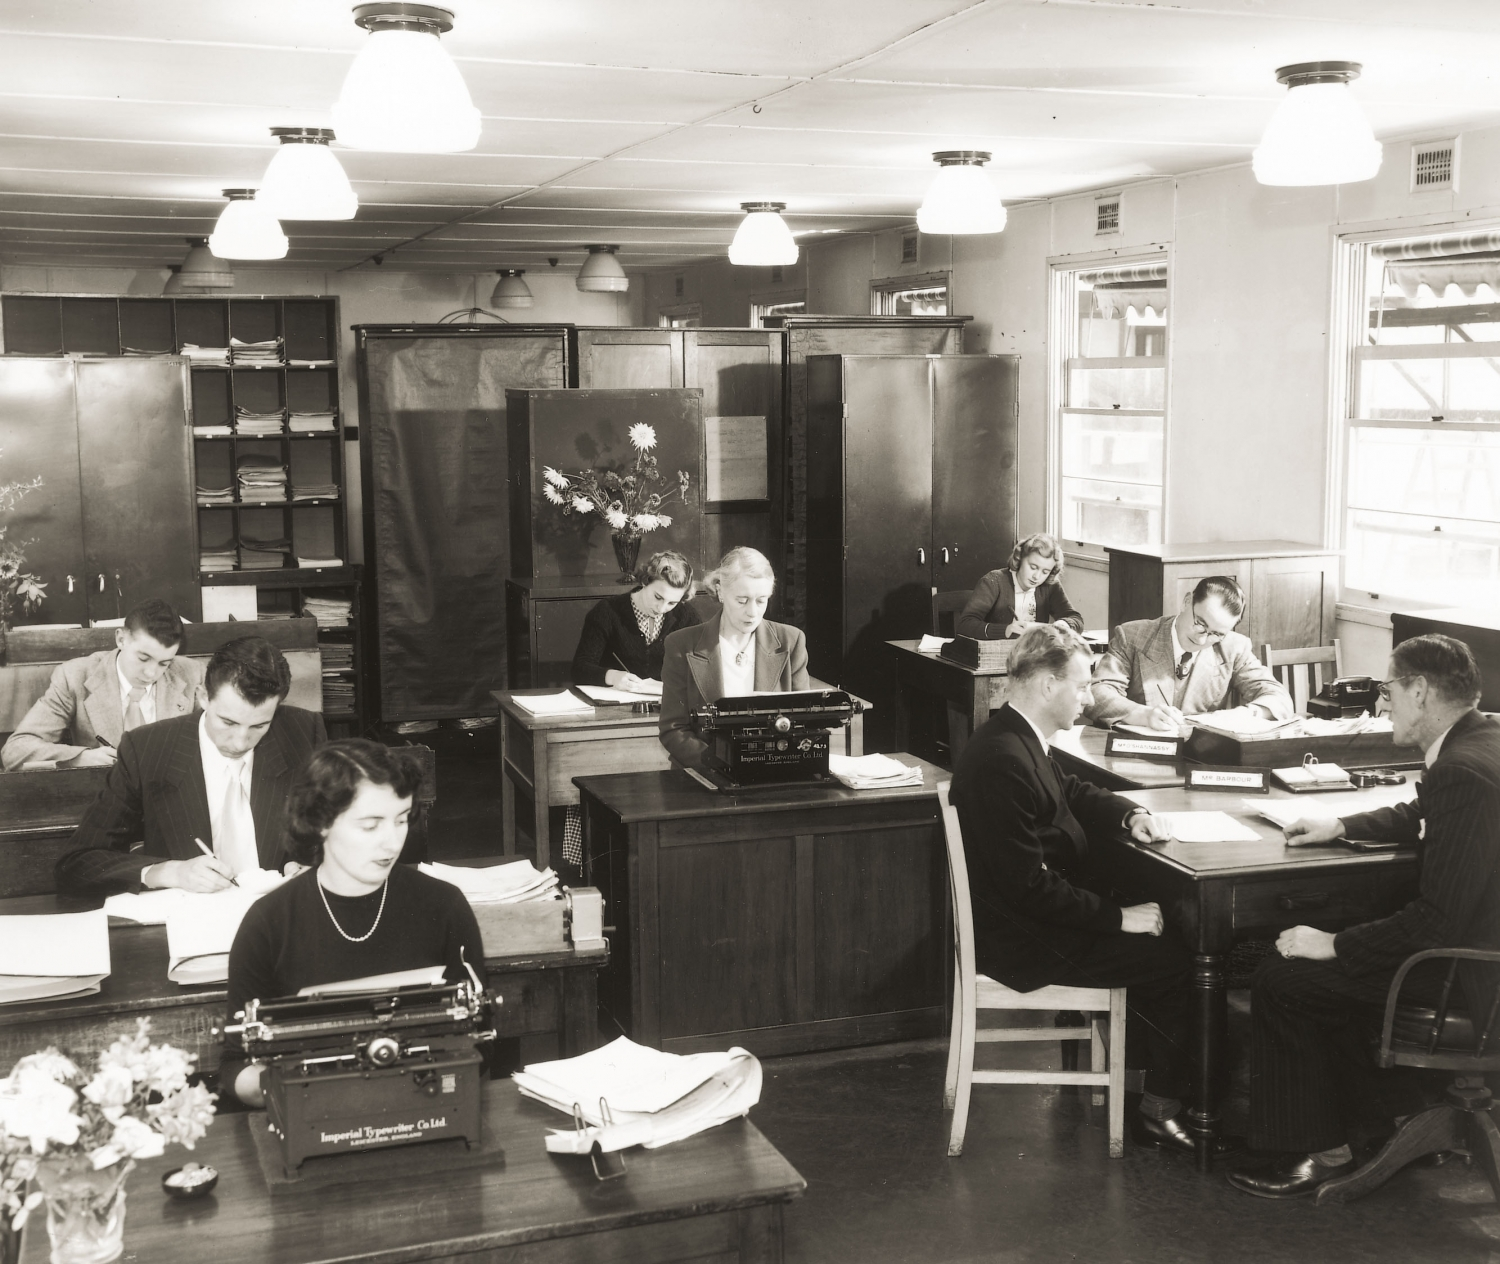 Office with several women on typewriters and men working at desks on paperwork. The room is filled with heavy office furniture, low ceiling and rows of lights.